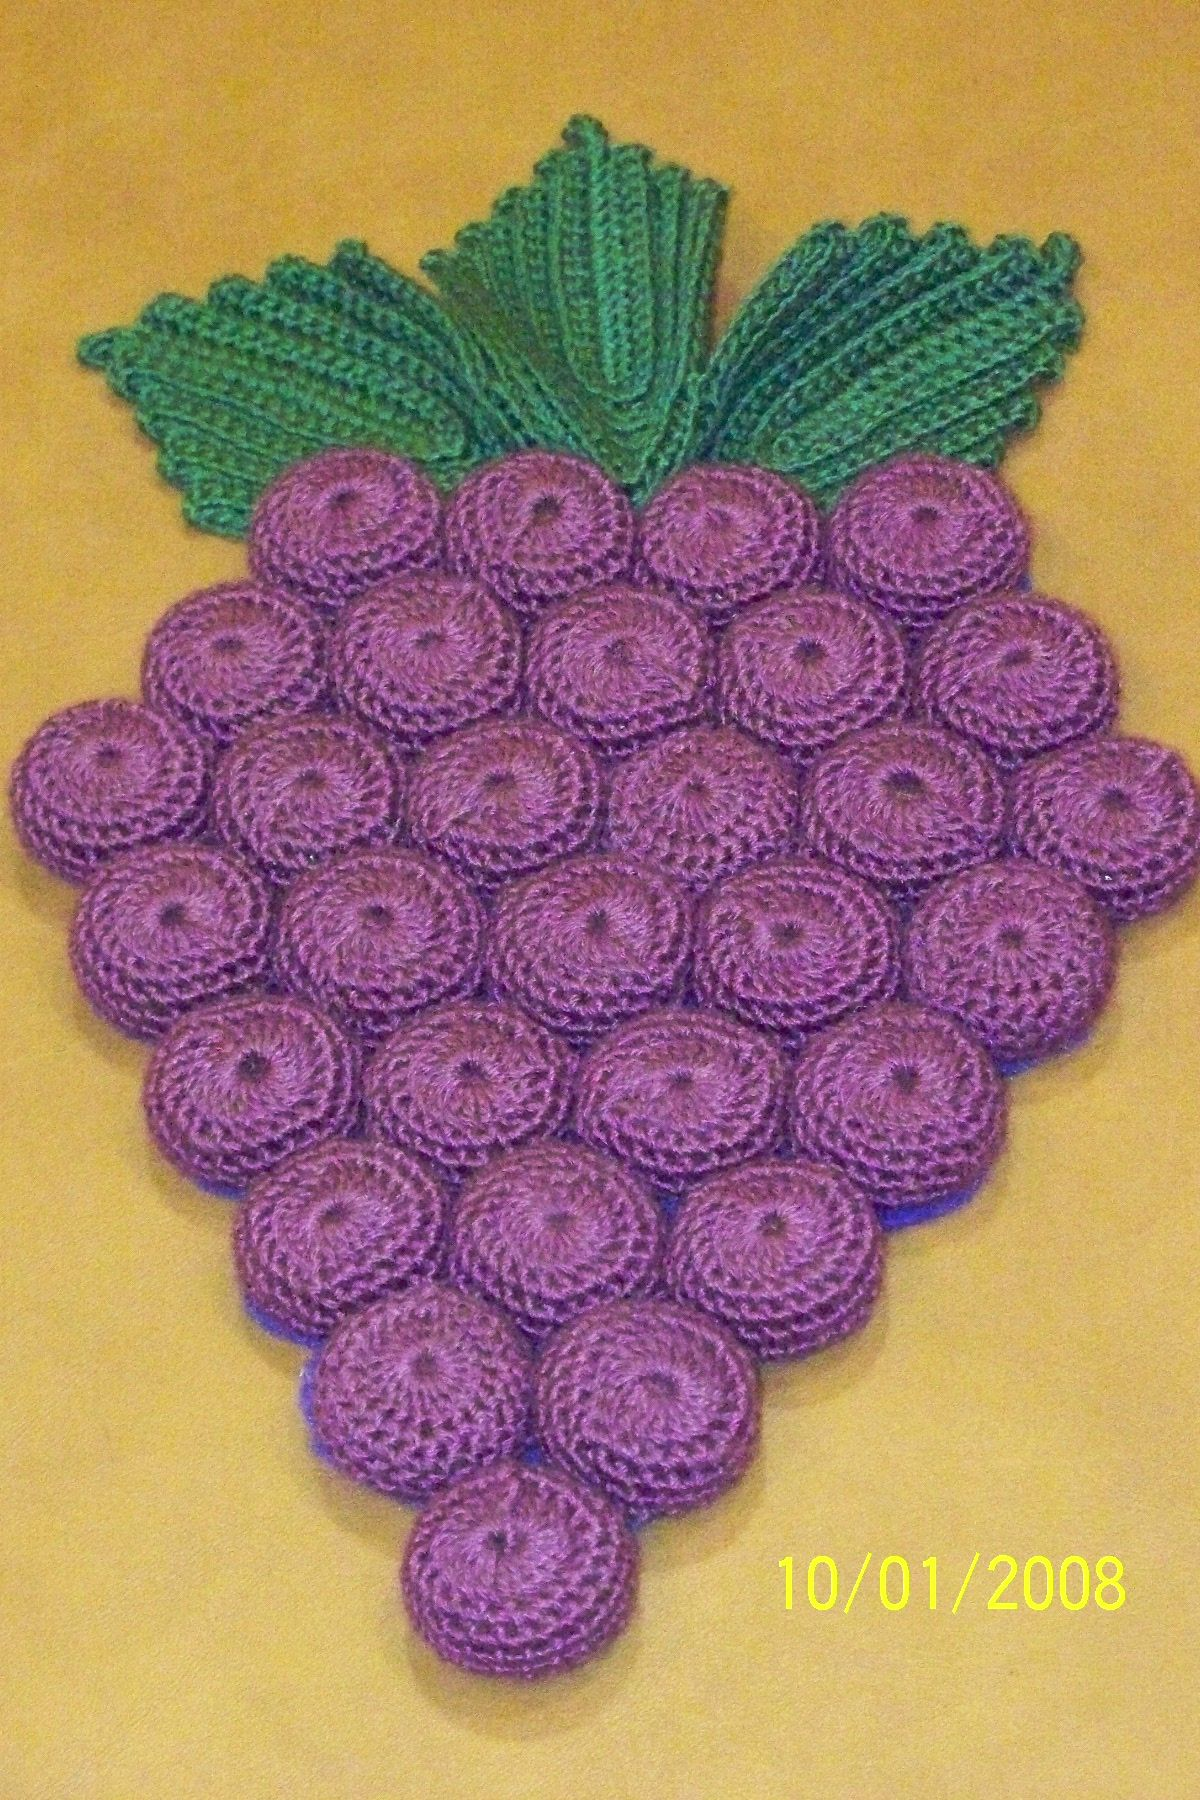 This Is A Bottle Cap Crochet I Made This Potholder For A Secret